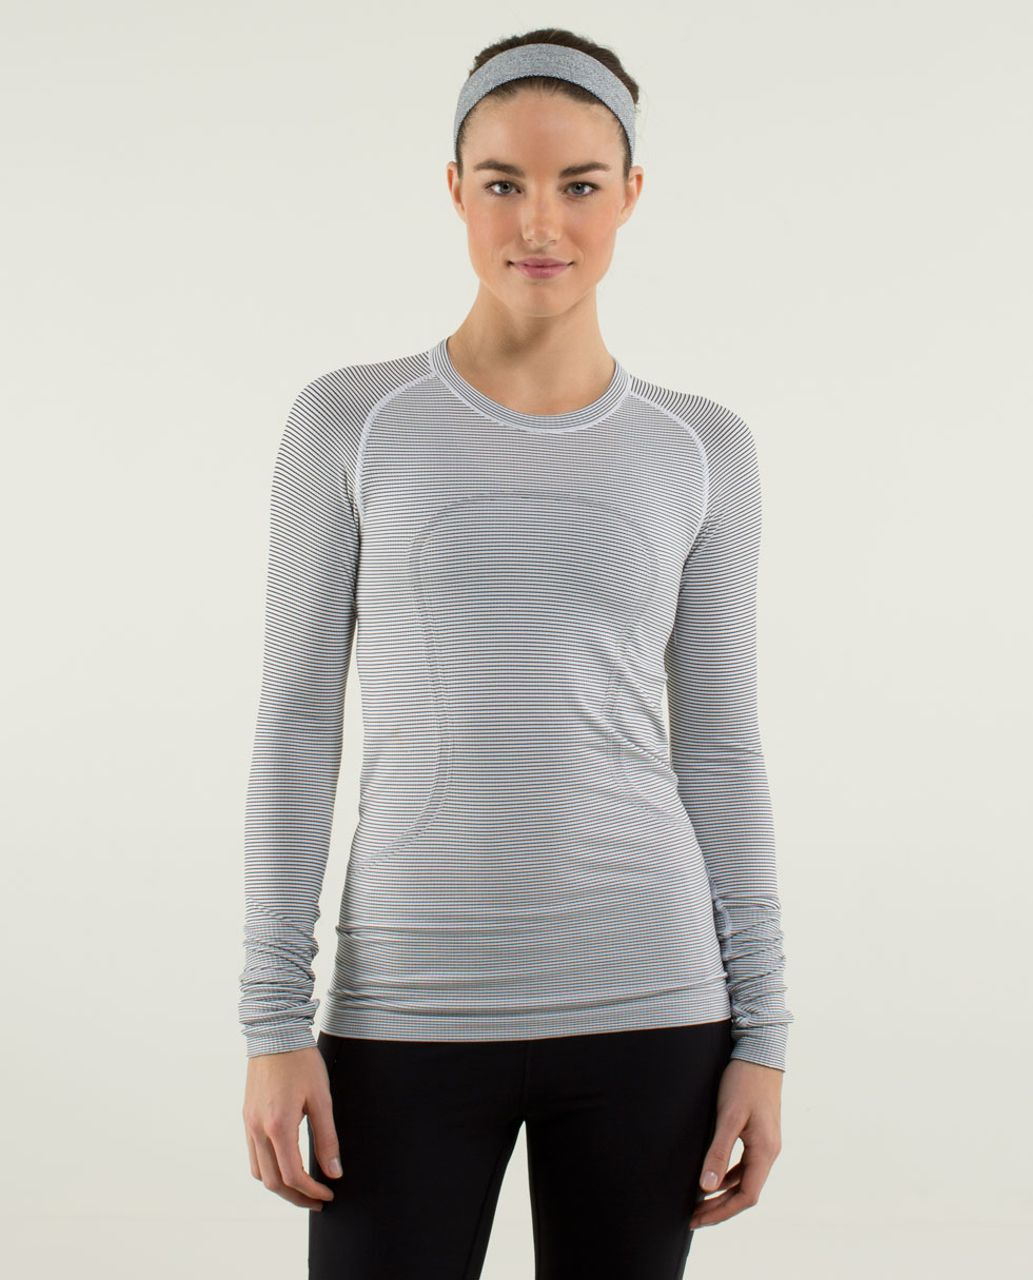 e0462aa9b1e76 Lululemon Run  Swiftly Tech Long Sleeve  Stripe - White - lulu fanatics